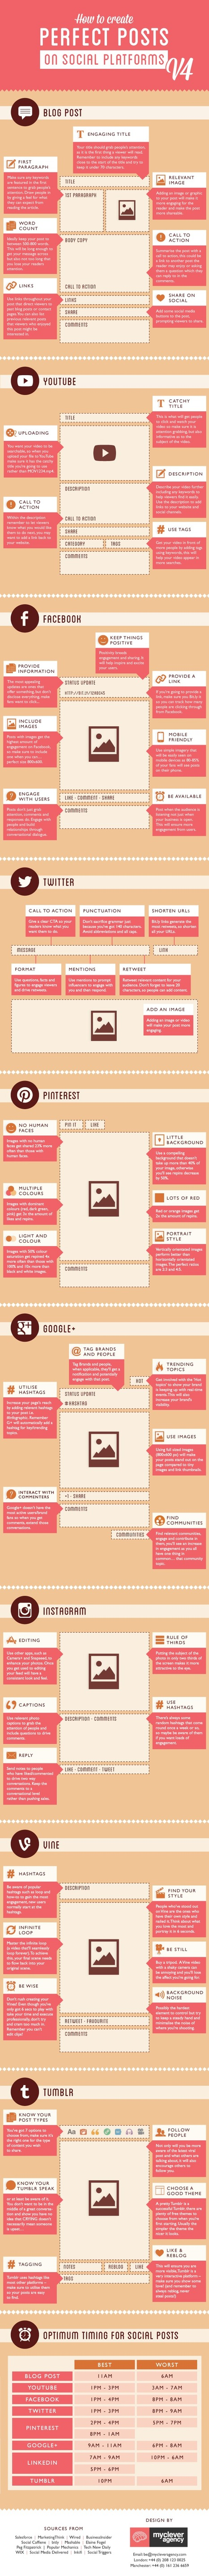 The Art of Creating Perfect Social Media Posts - infographic | Blogging | Scoop.it